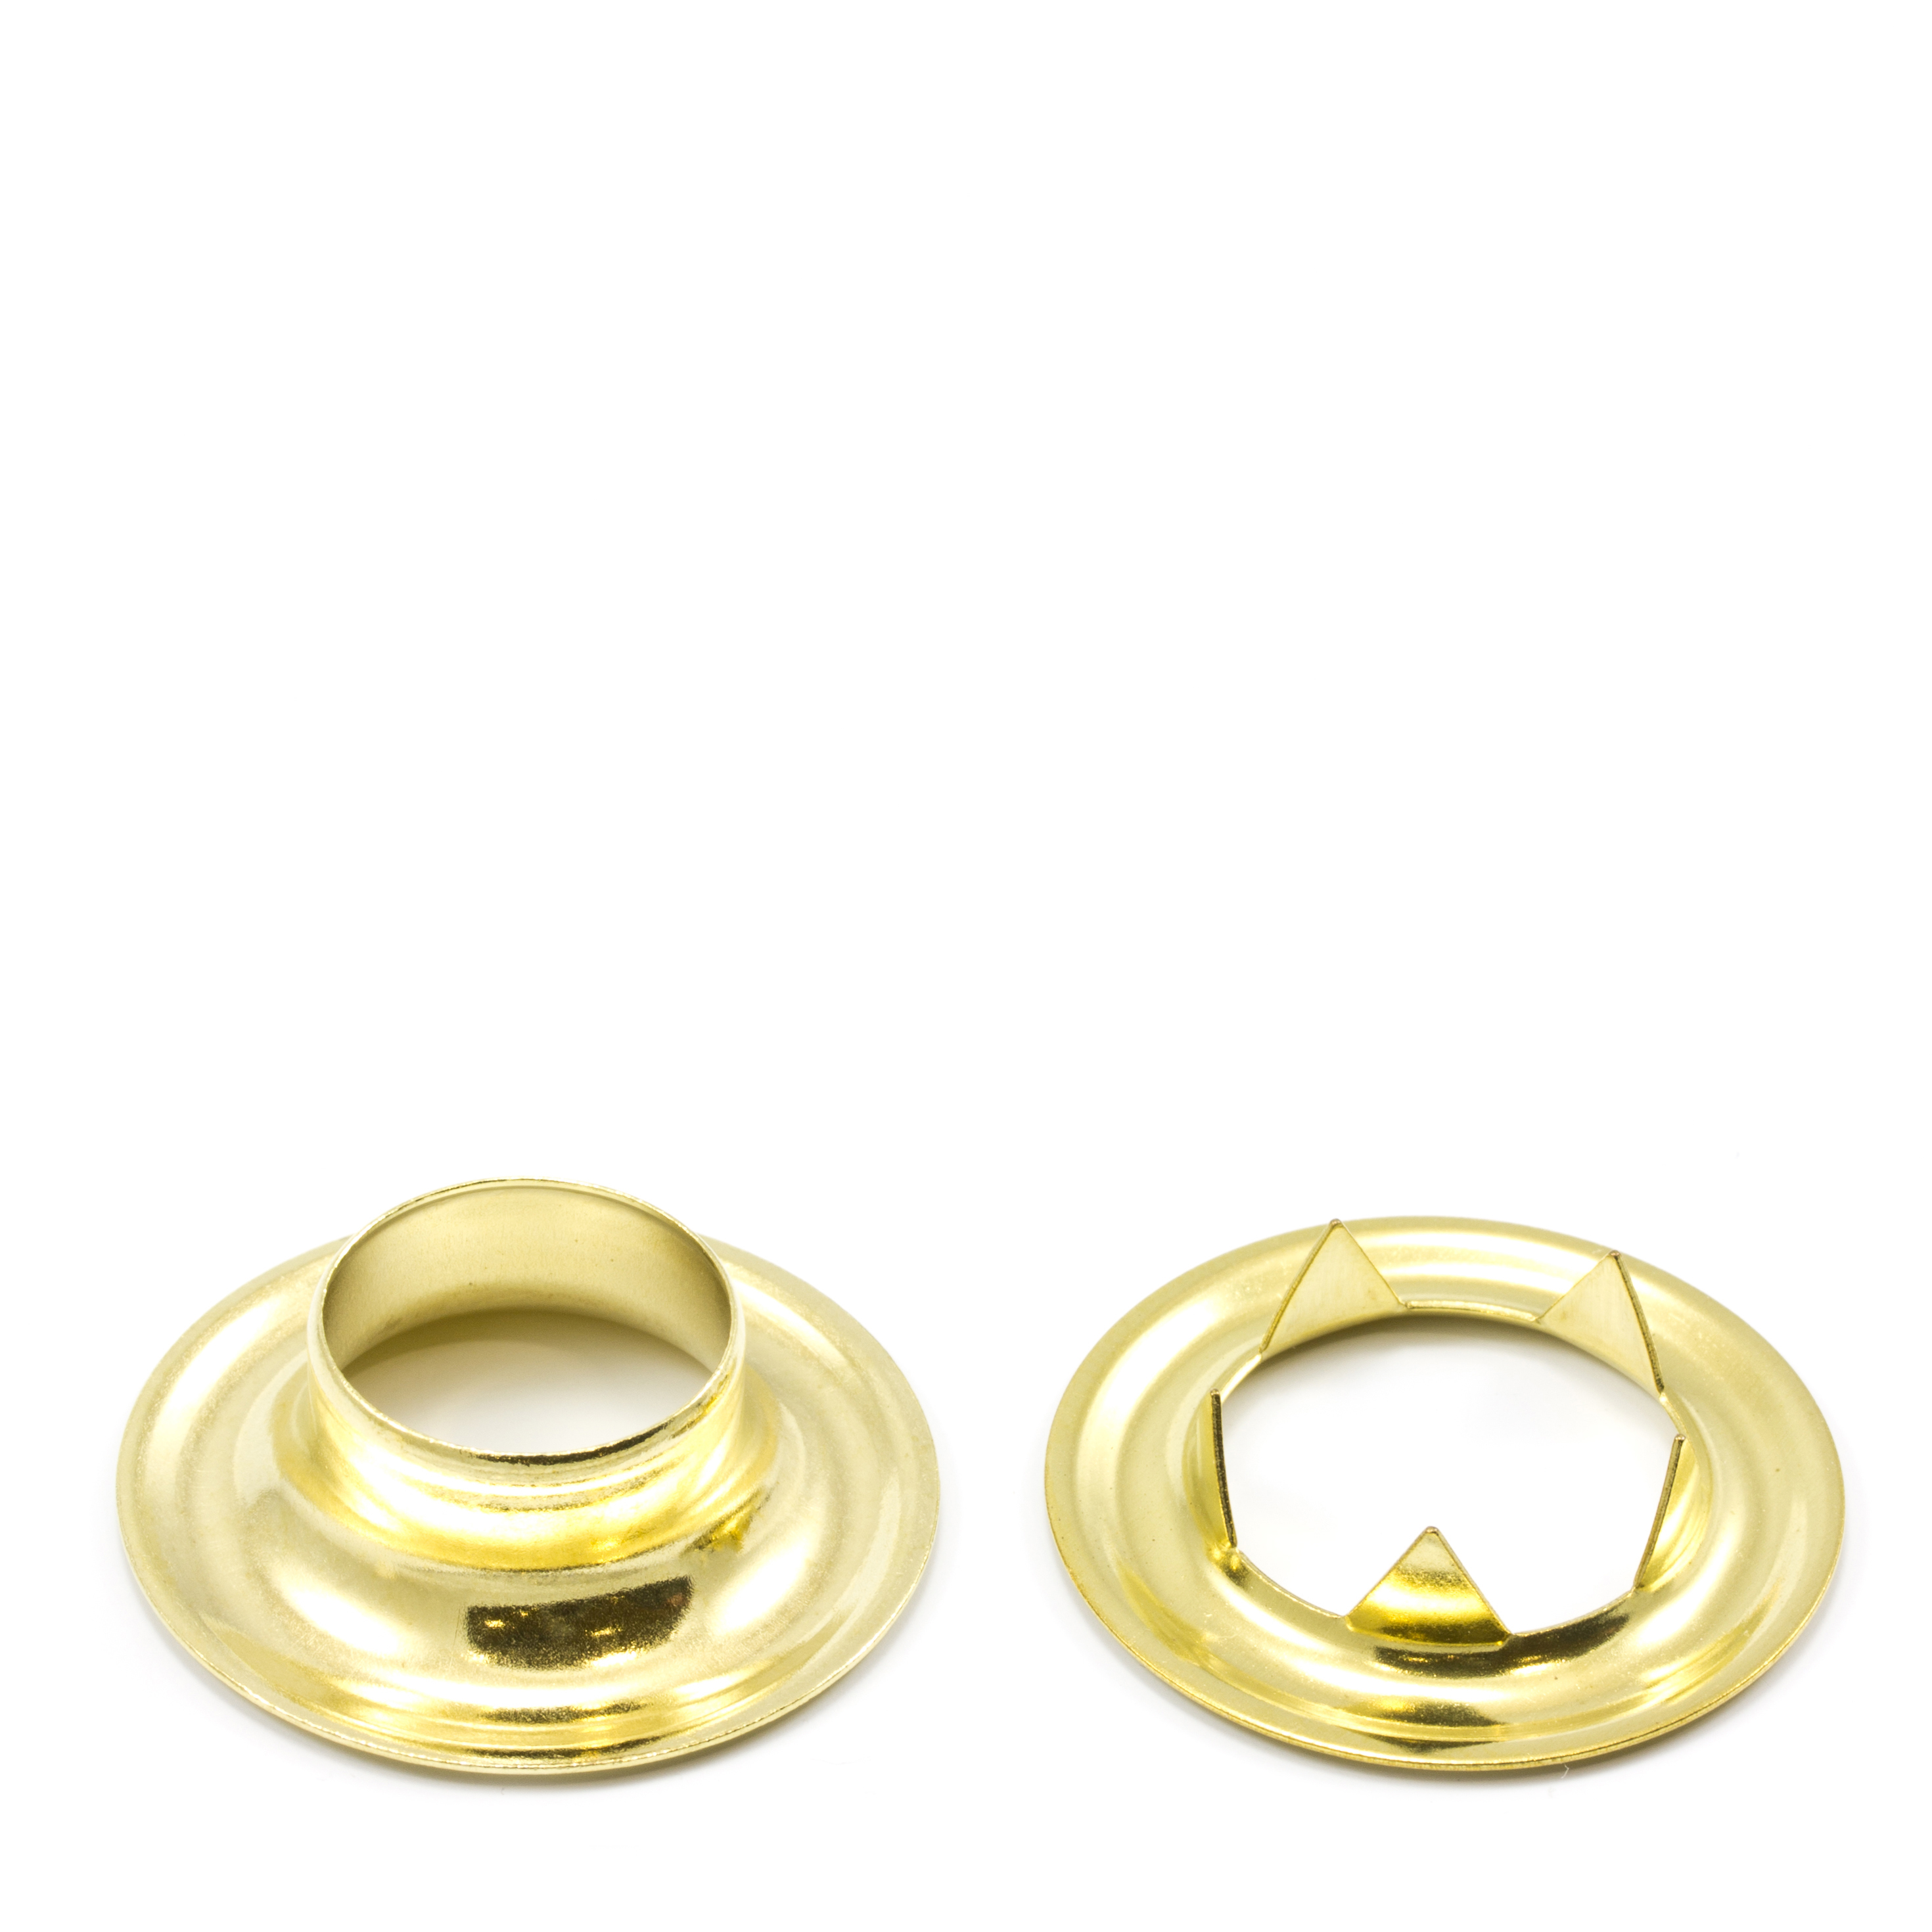 Grommet with Tooth Washer #5 Brass 5/8